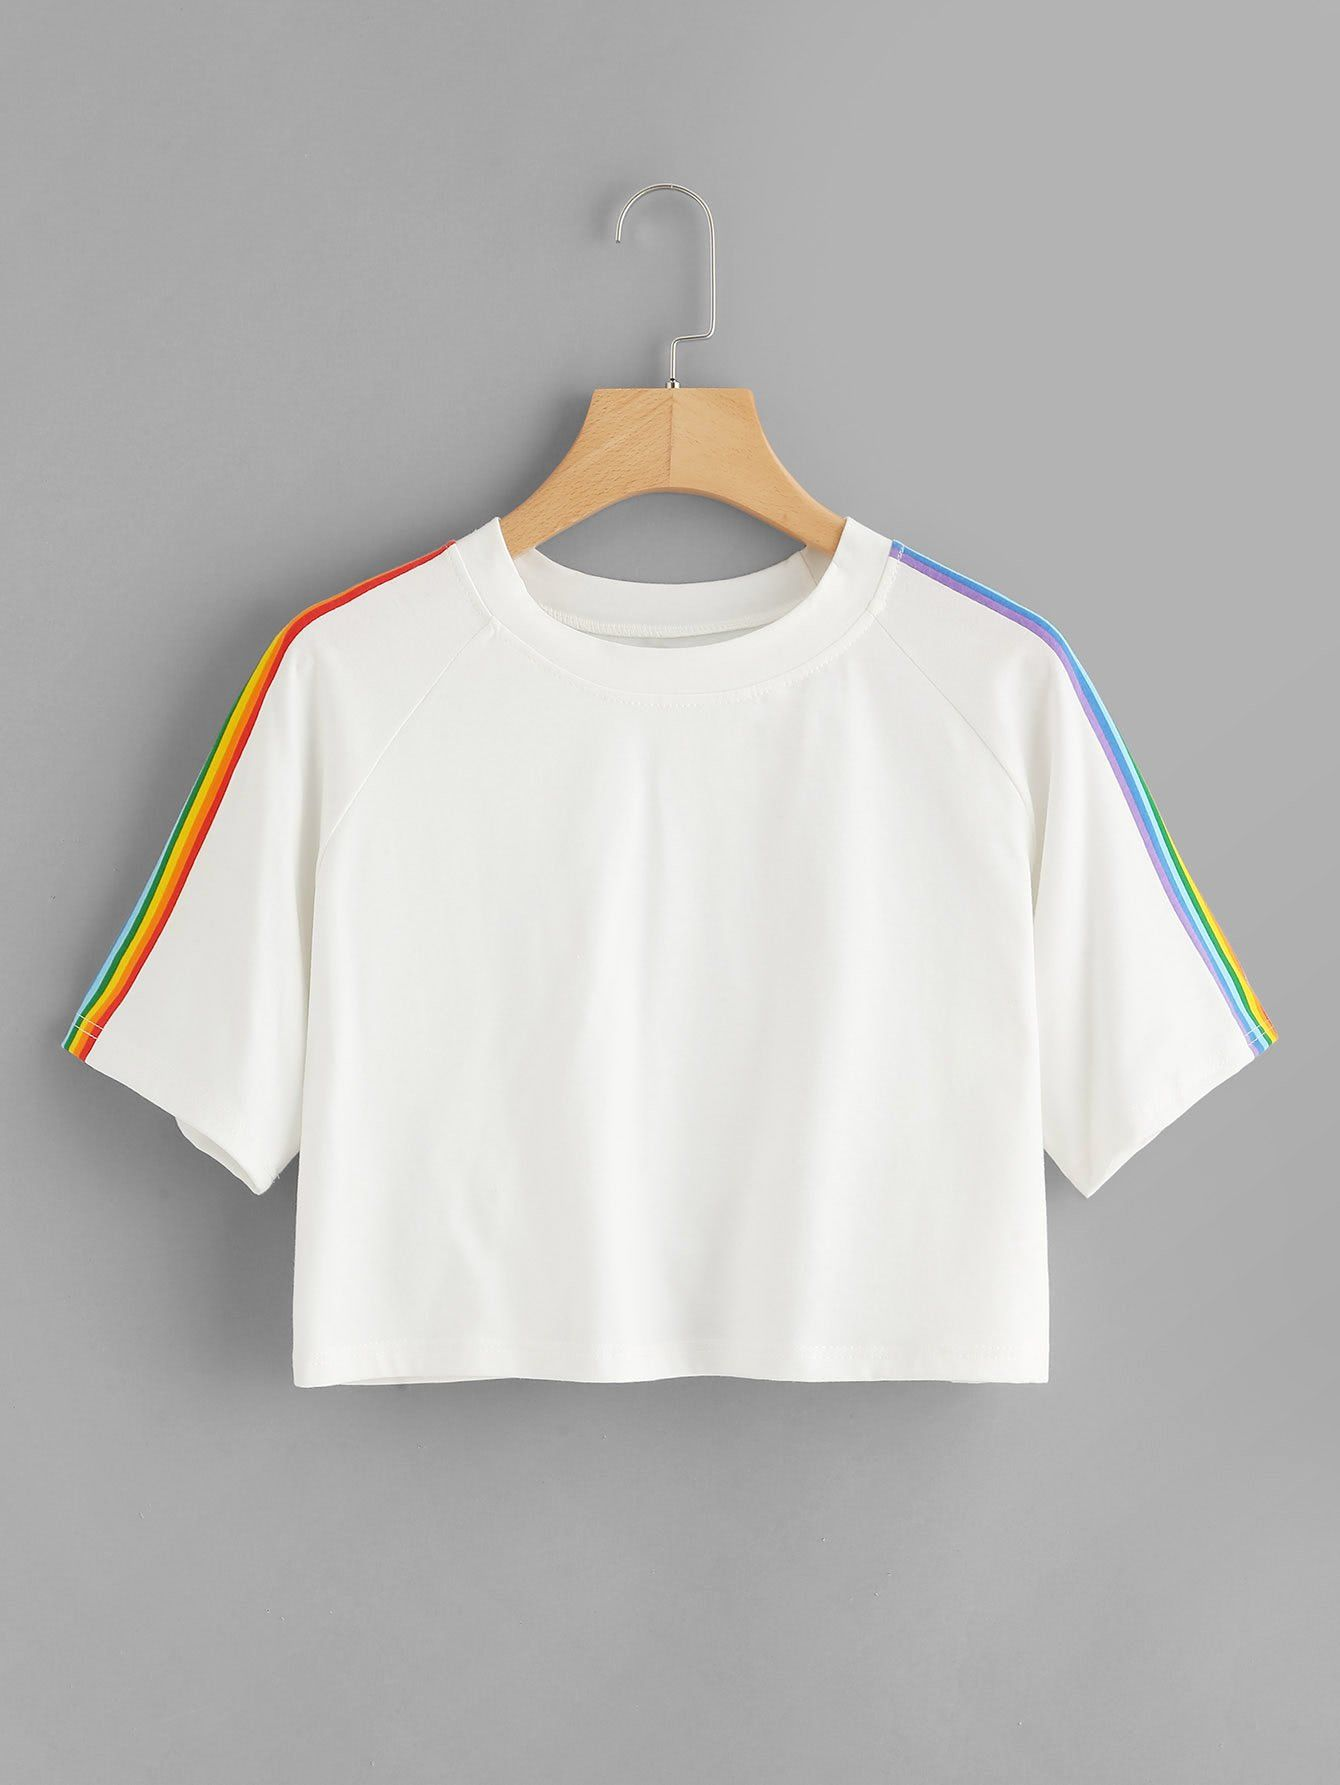 246dc6b9e0 Rainbow Stripe Panel Crop Tshirt | Outfits | Clothes, Fashion, Crop ...